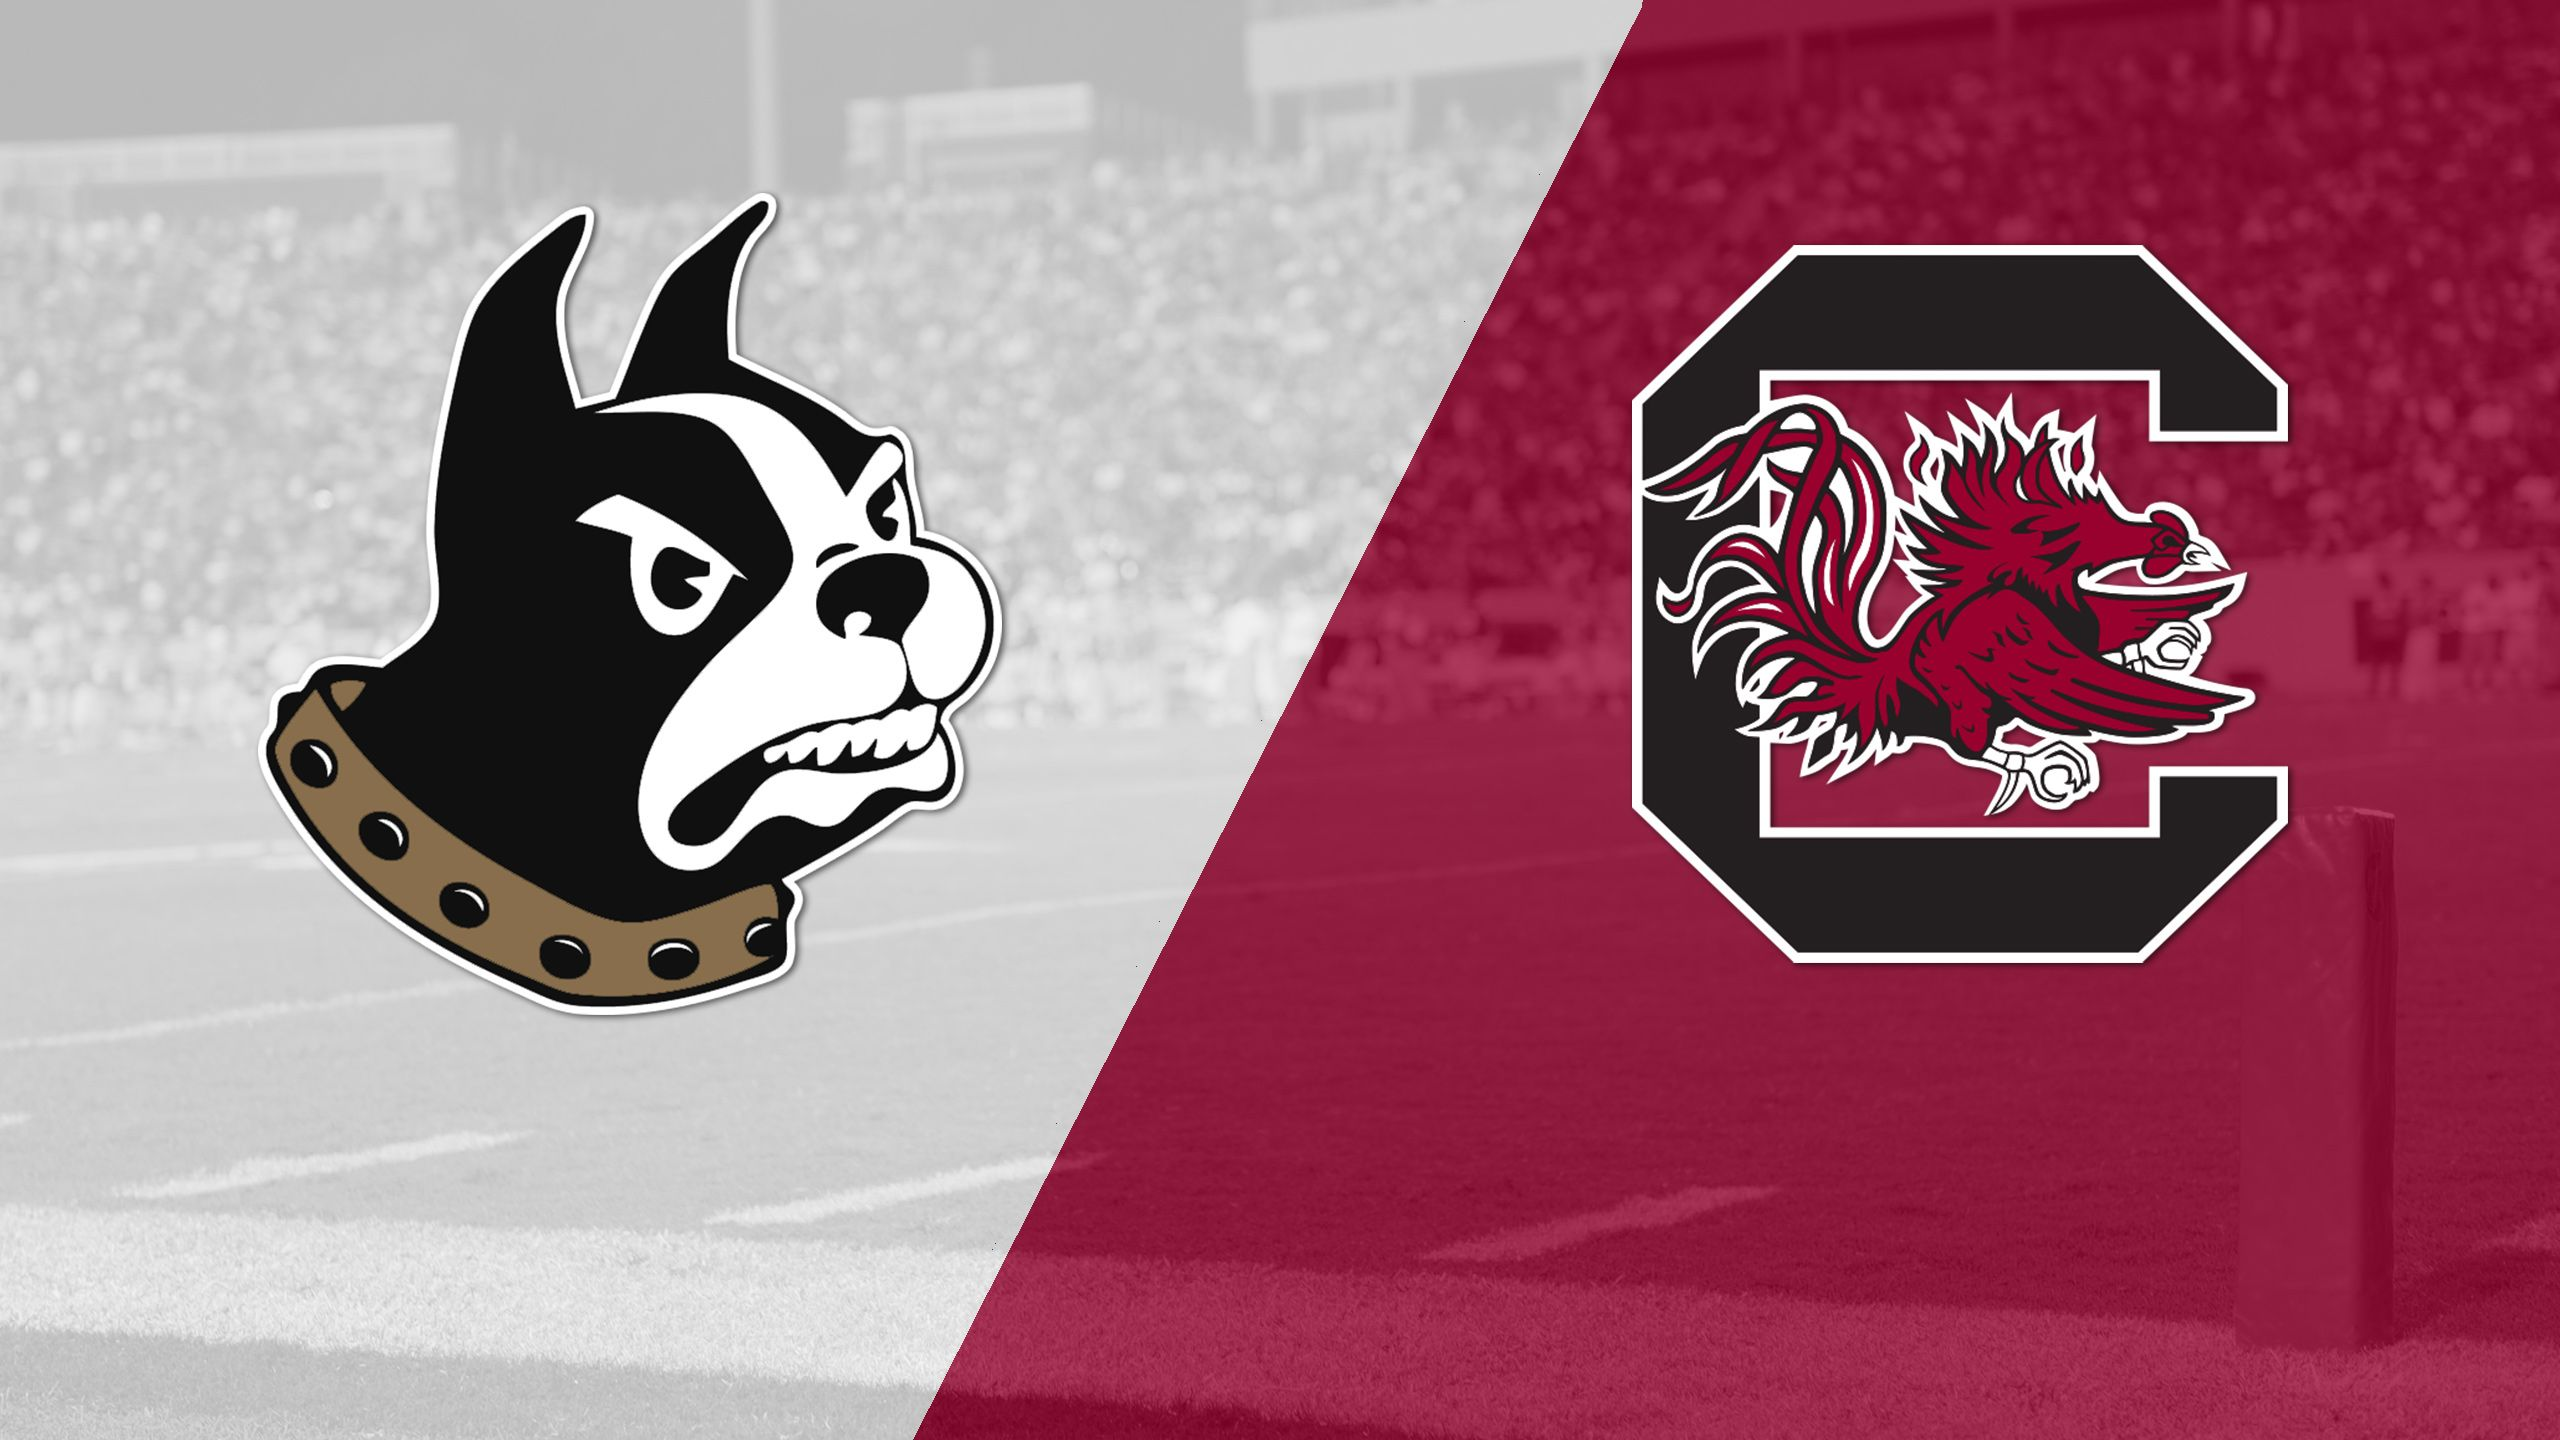 Wofford vs. South Carolina (Football)